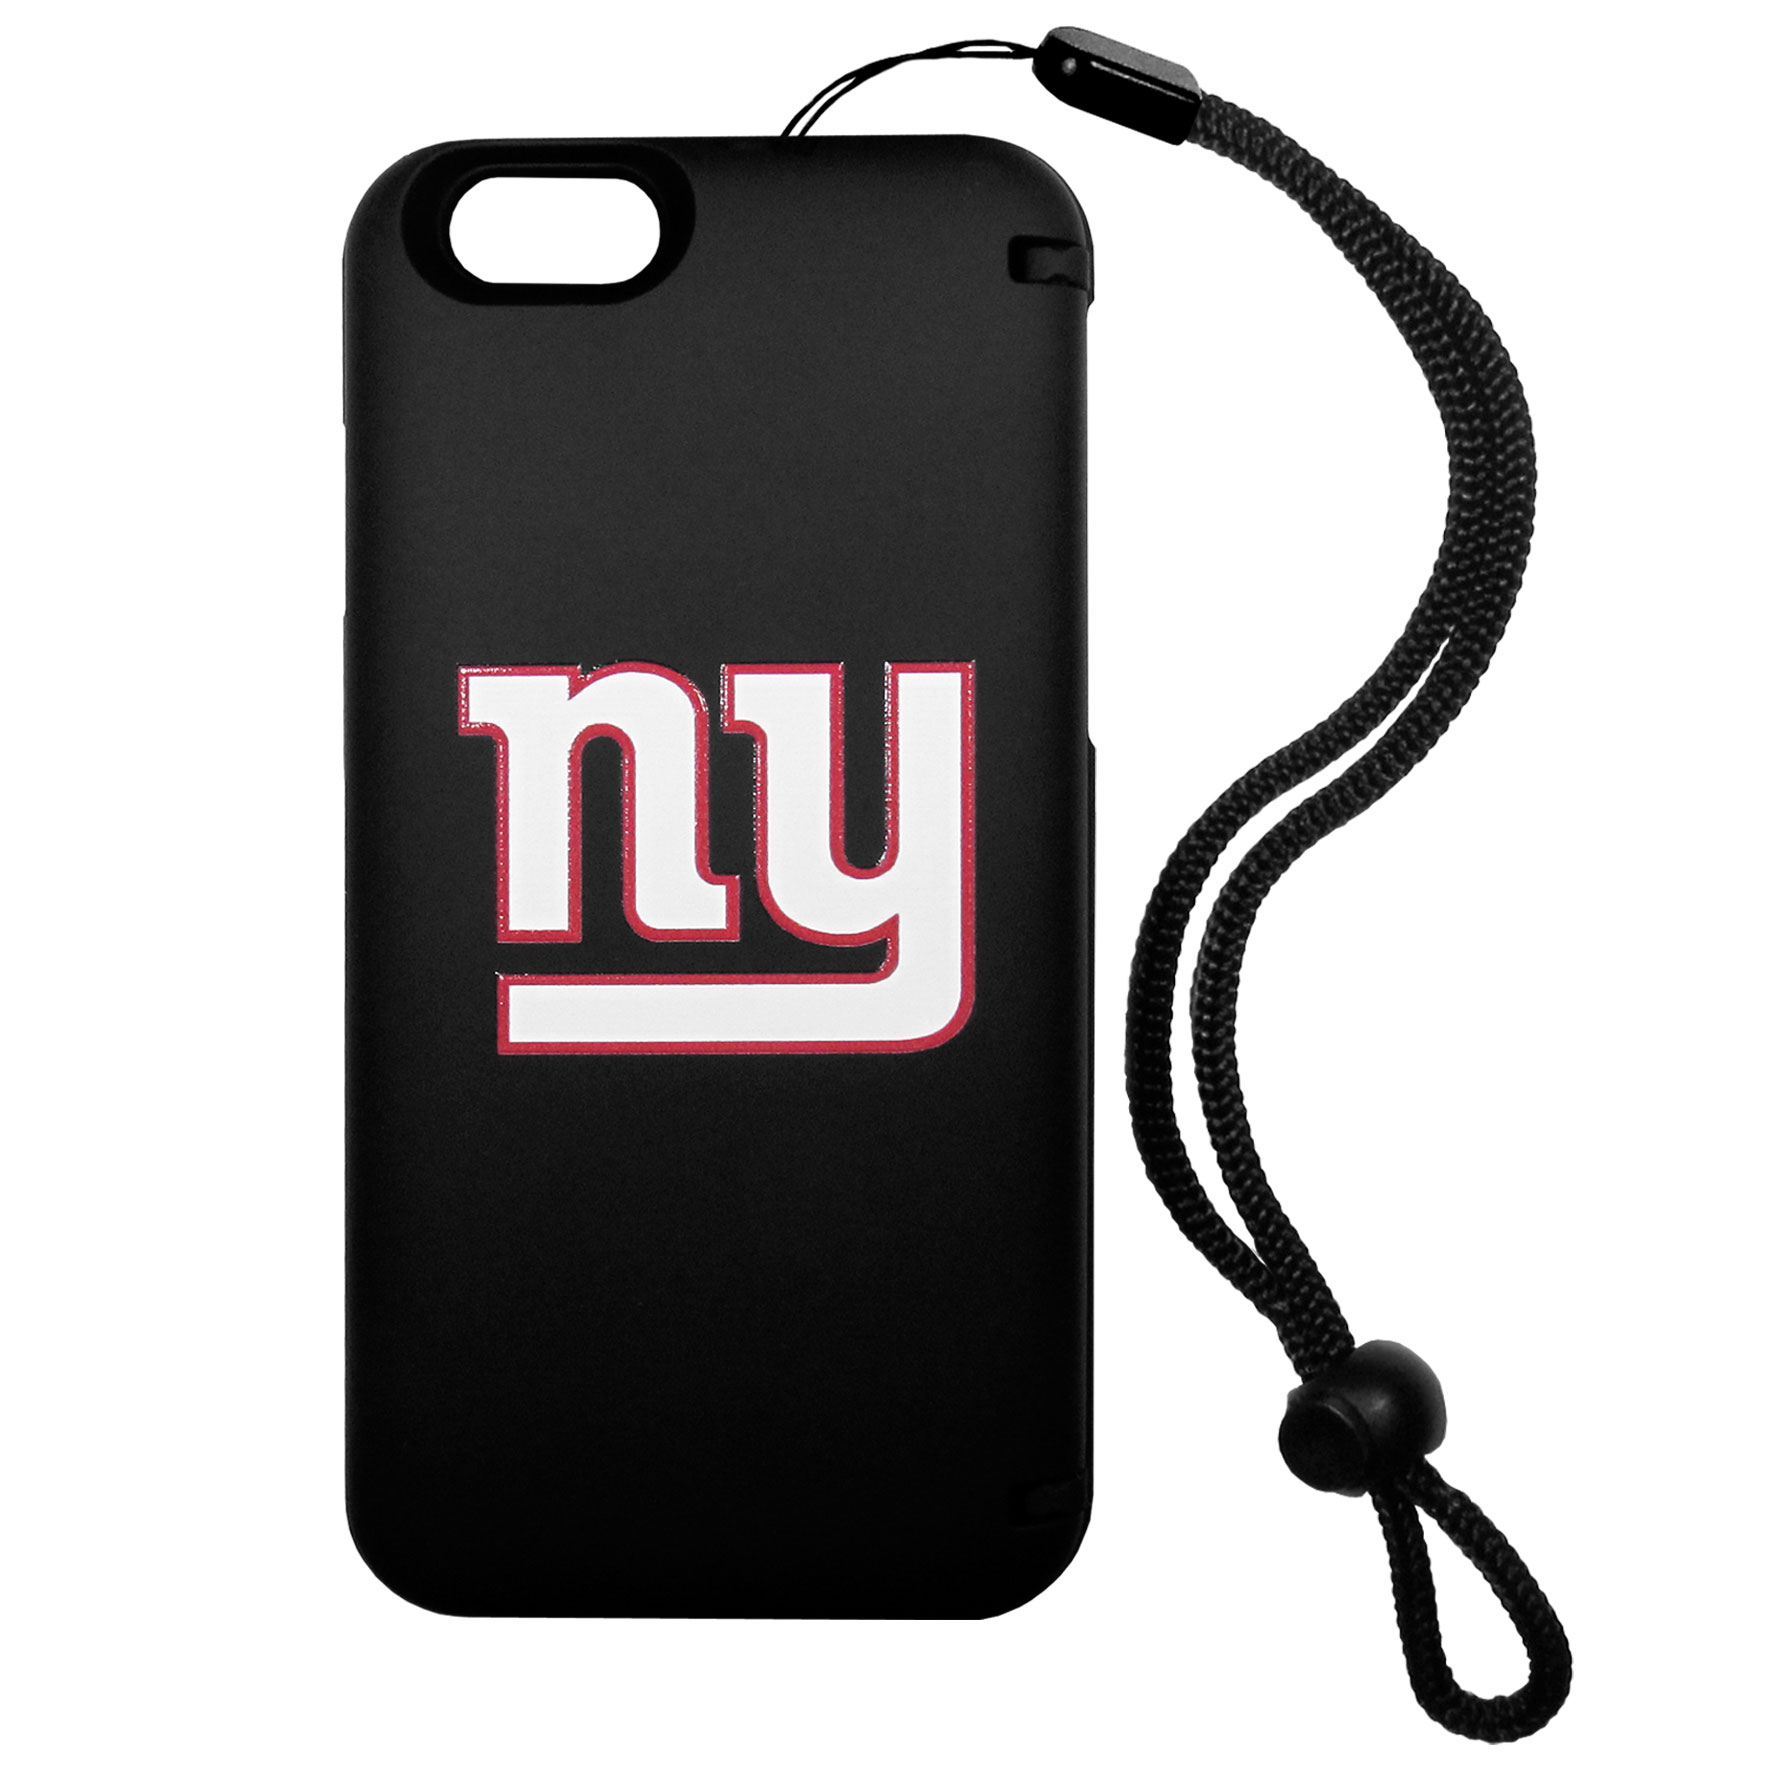 New York Giants iPhone 6 Plus Everything Case - This case really does have everything but the kitchen sink! The hidden compartment lets you keep your cards, money and tickets to the big game safe and secure and has a compact mirror so you can make sure your game face is ready to go. It also comes with a kickstand to make chatting and watching videos a breeze. The wrist strap allows you to travel with ease with your everything case. If that's not enough, it also comes with the New York Giants logo printed in expert detail on the front.